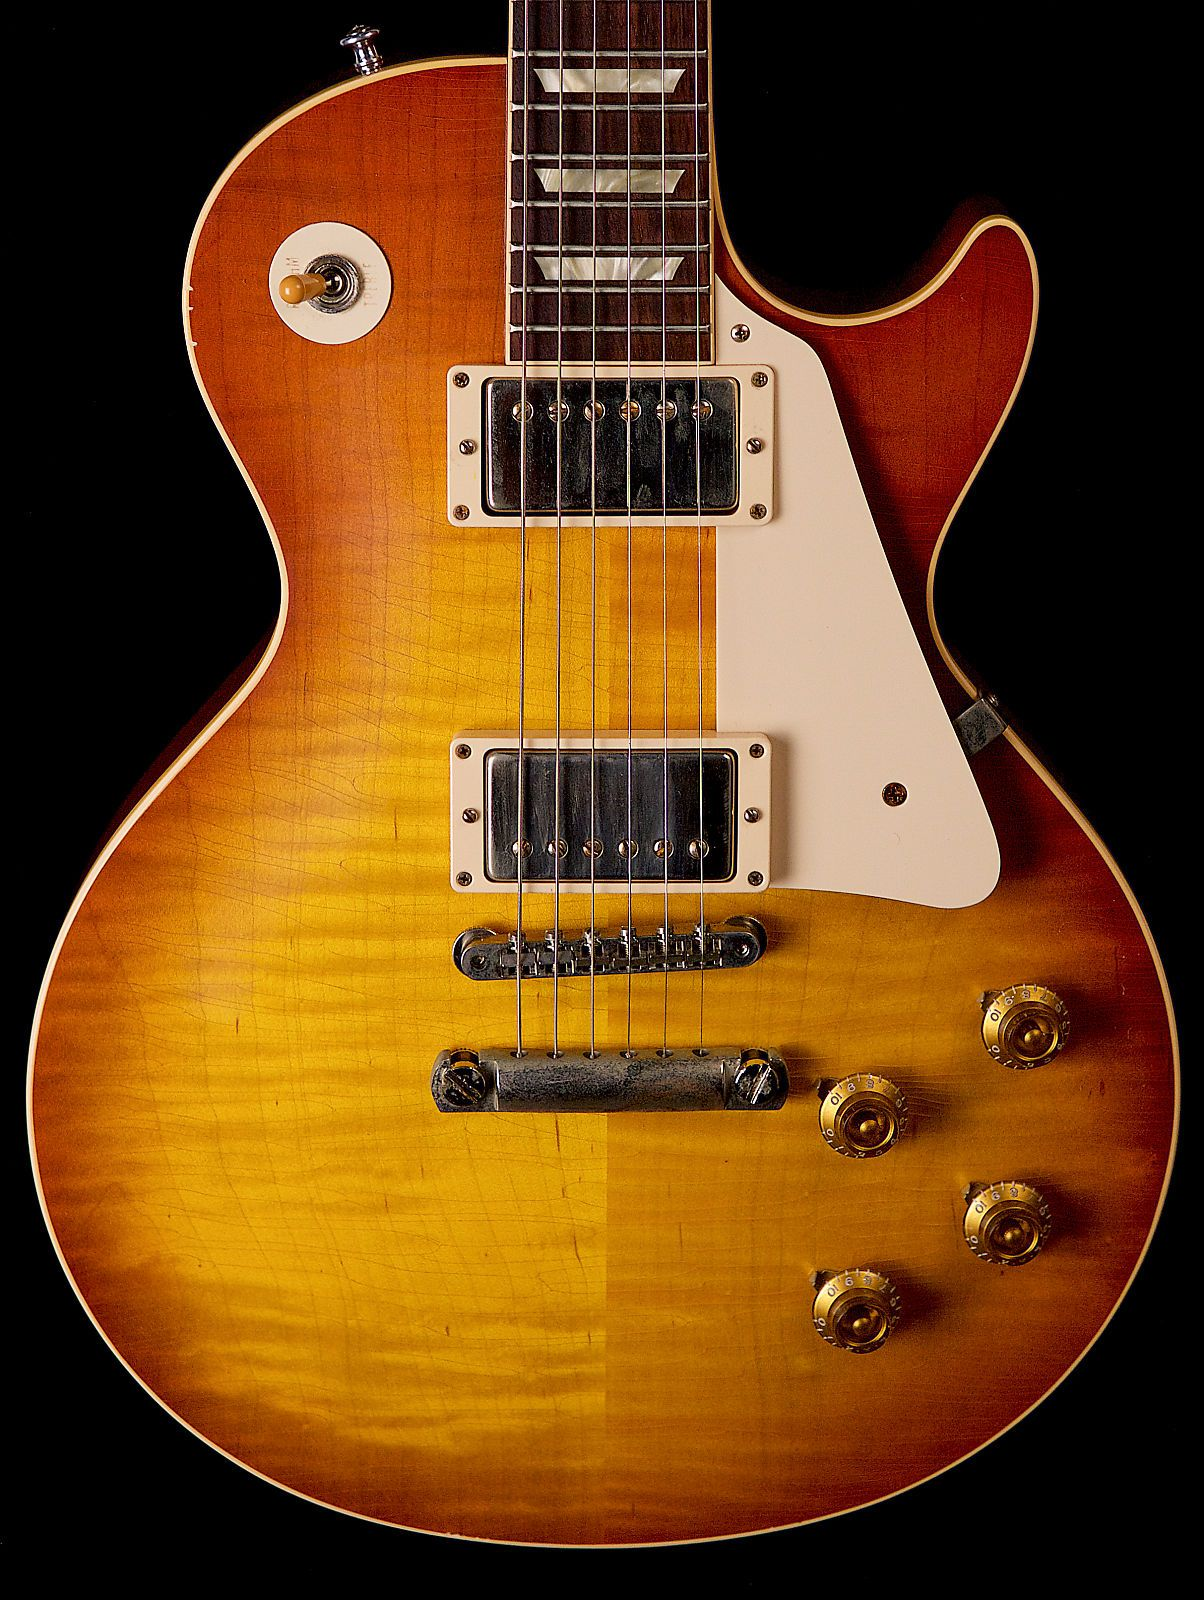 gibson custom shop eric clapton 1960 beano les paul aged signed 2011 sunburst gibson les. Black Bedroom Furniture Sets. Home Design Ideas